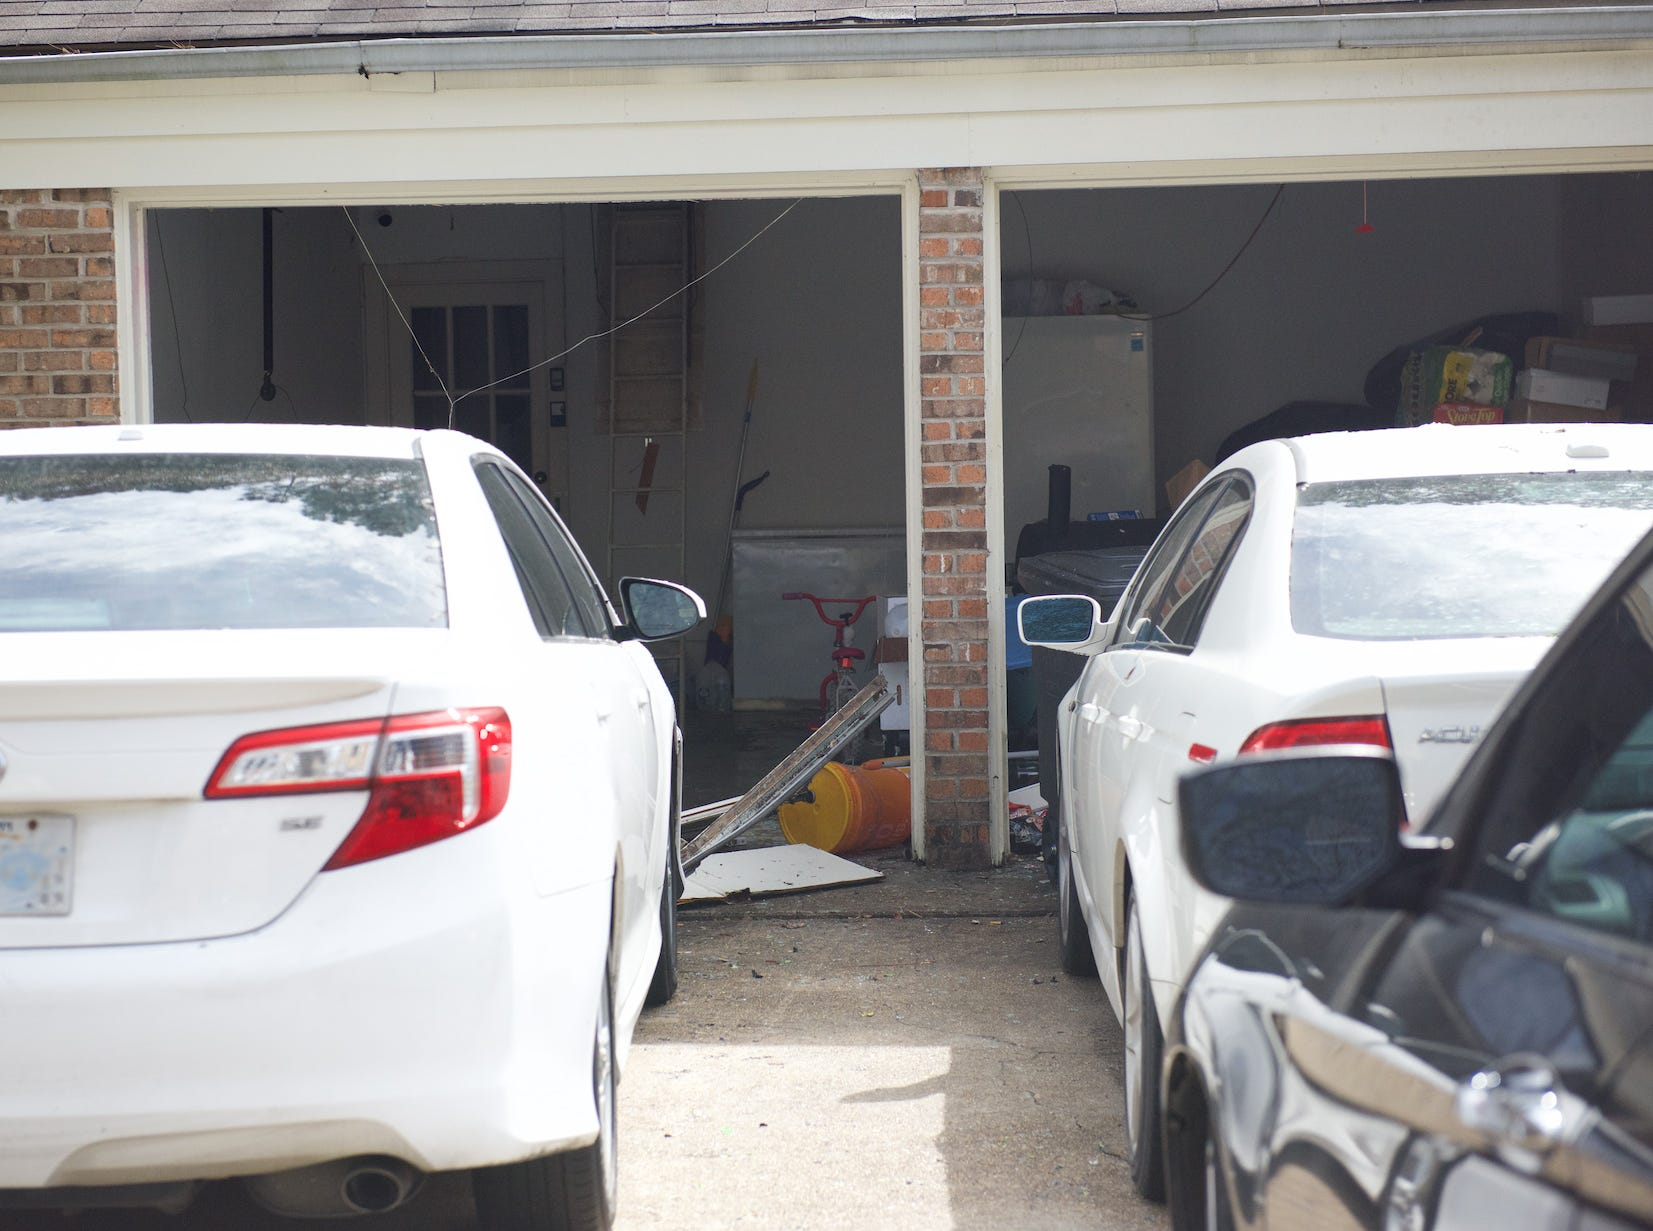 In this photo taken February 18, 2019, law enforcement blew out the garage doors of a Clinton home with detonator's to gain access to the house during a standoff on Saturday, Feb.16, neighbors said.